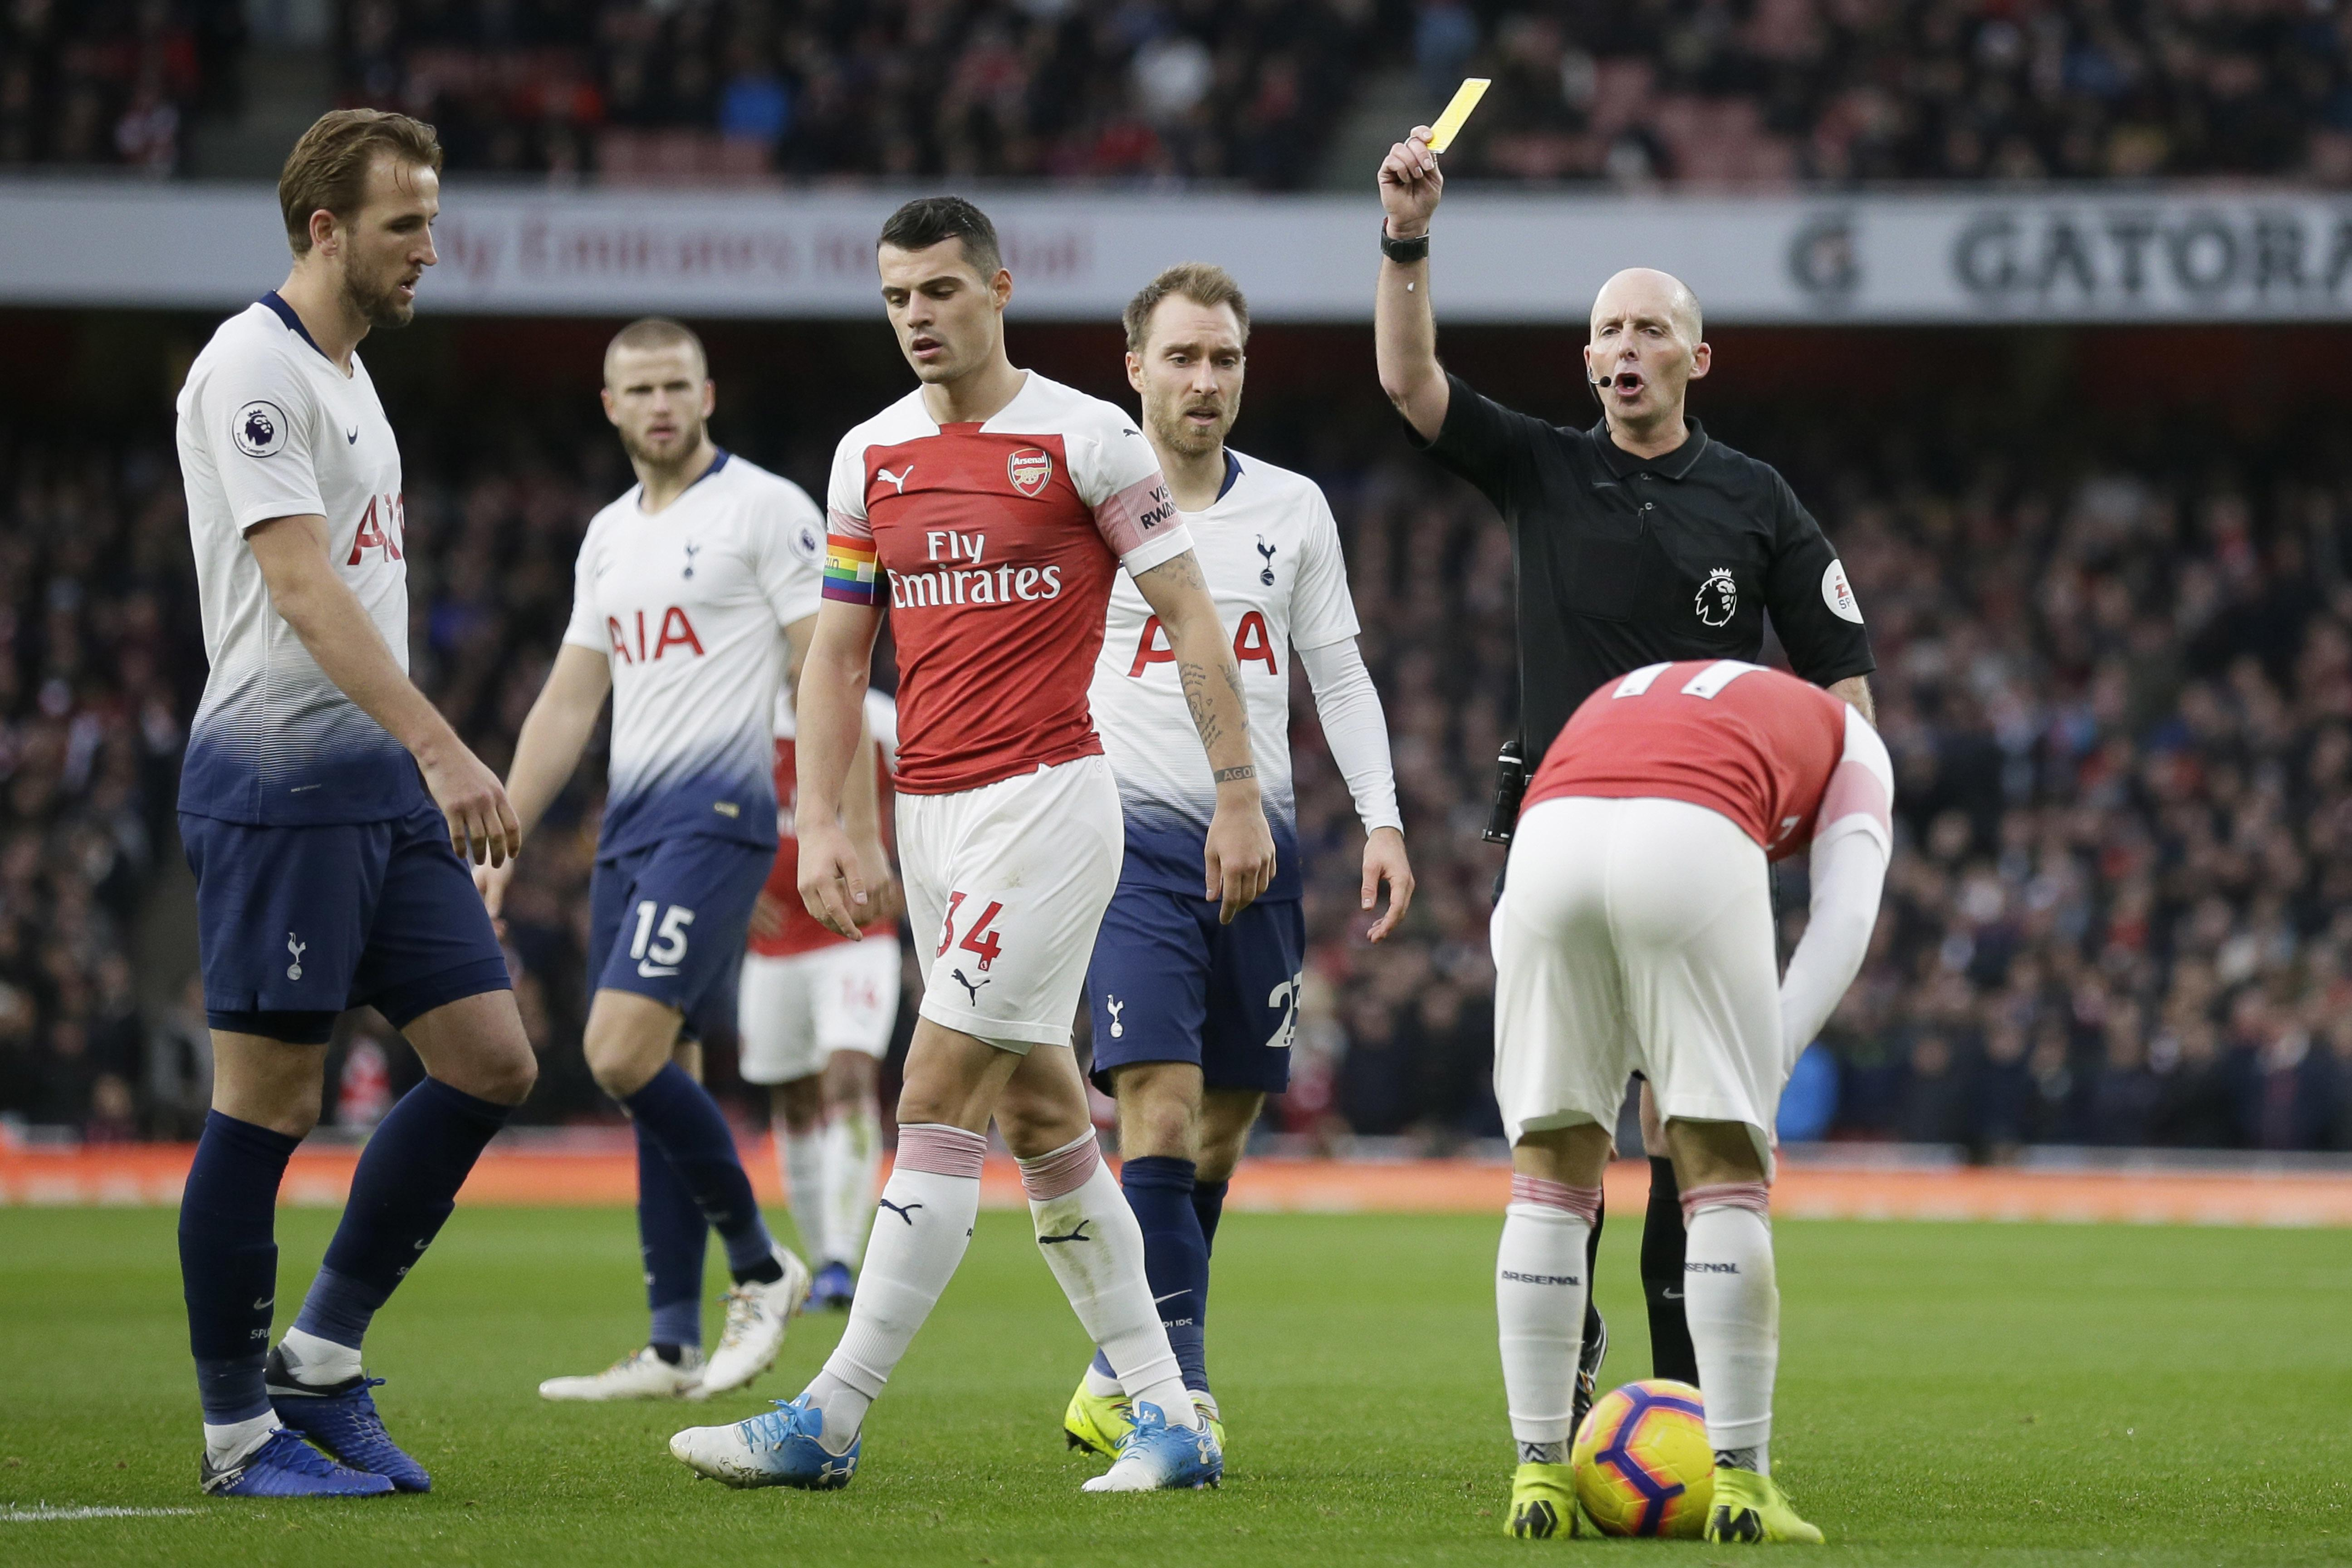 The Emirates saw a heated London derby